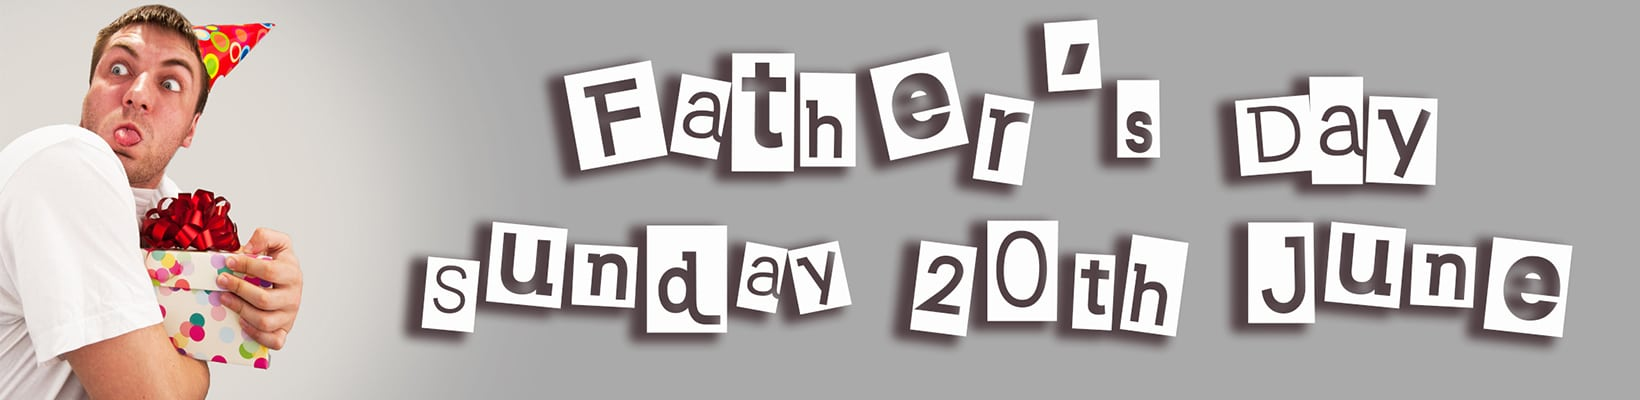 Father's Day Sunday 20th June